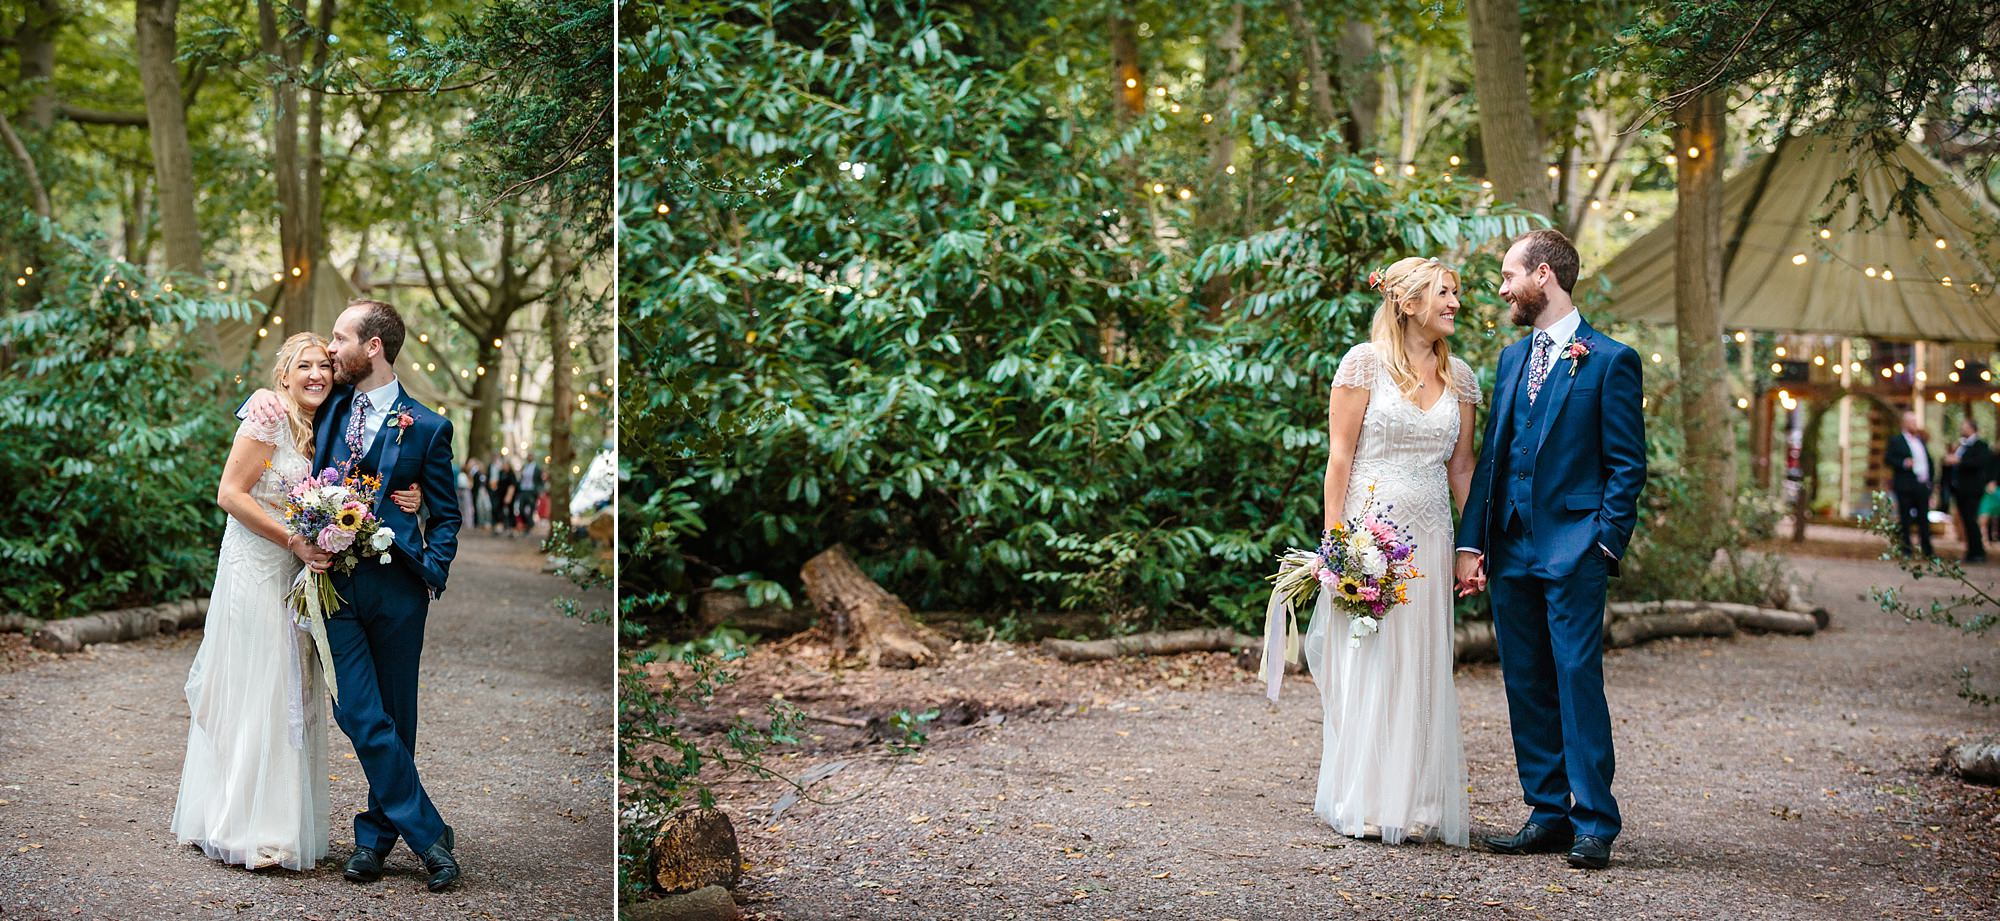 Woodland Weddings Tring groom and bride in woods